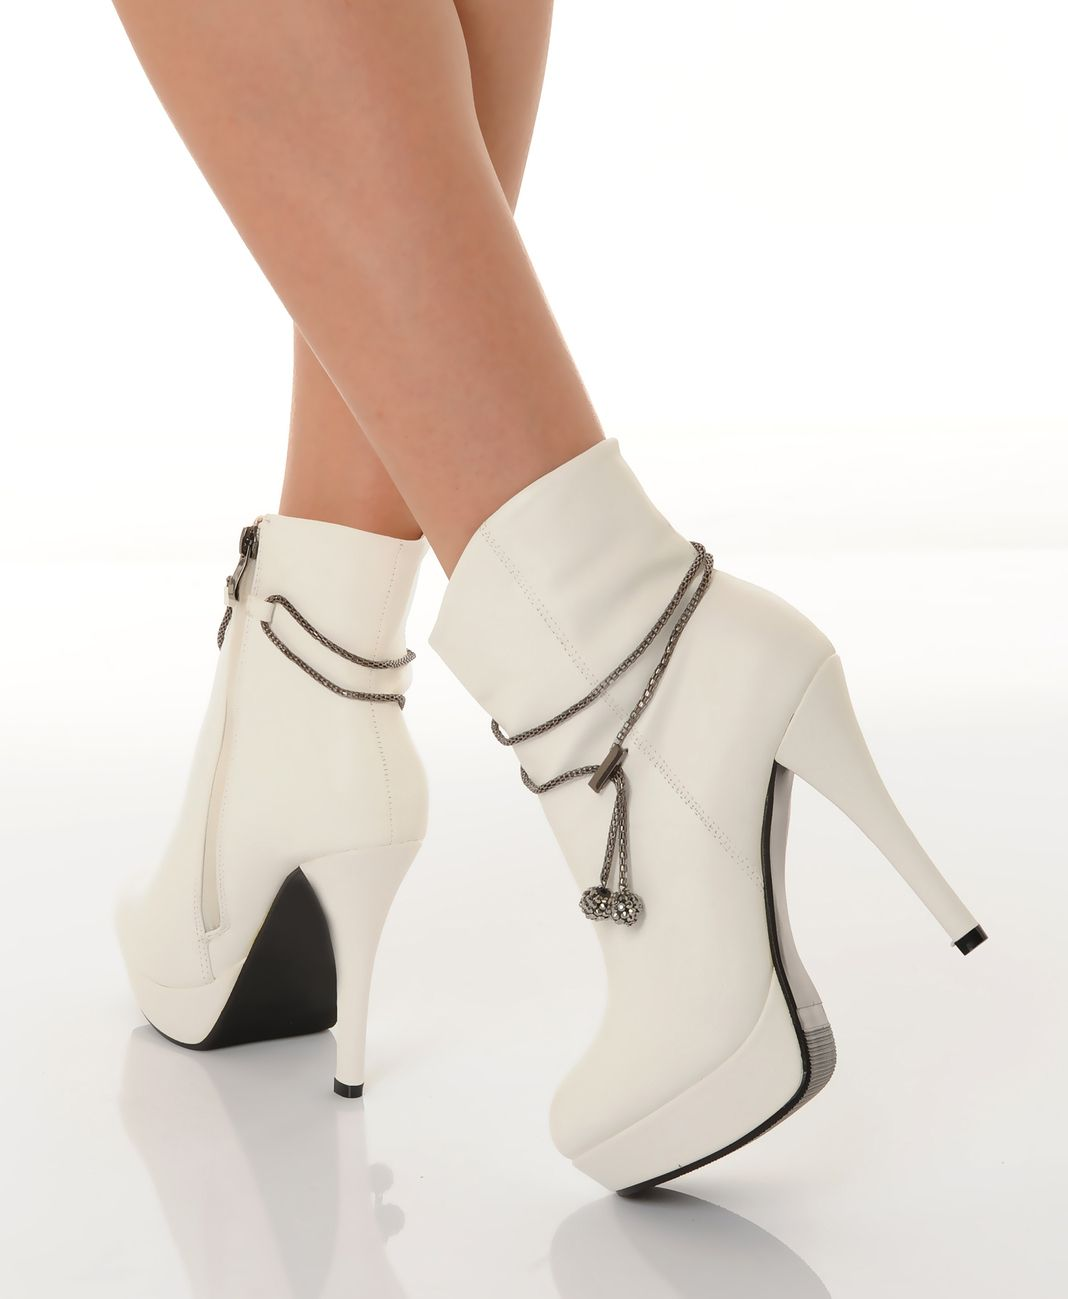 high shoes for girls - google search | fashion beauty styles